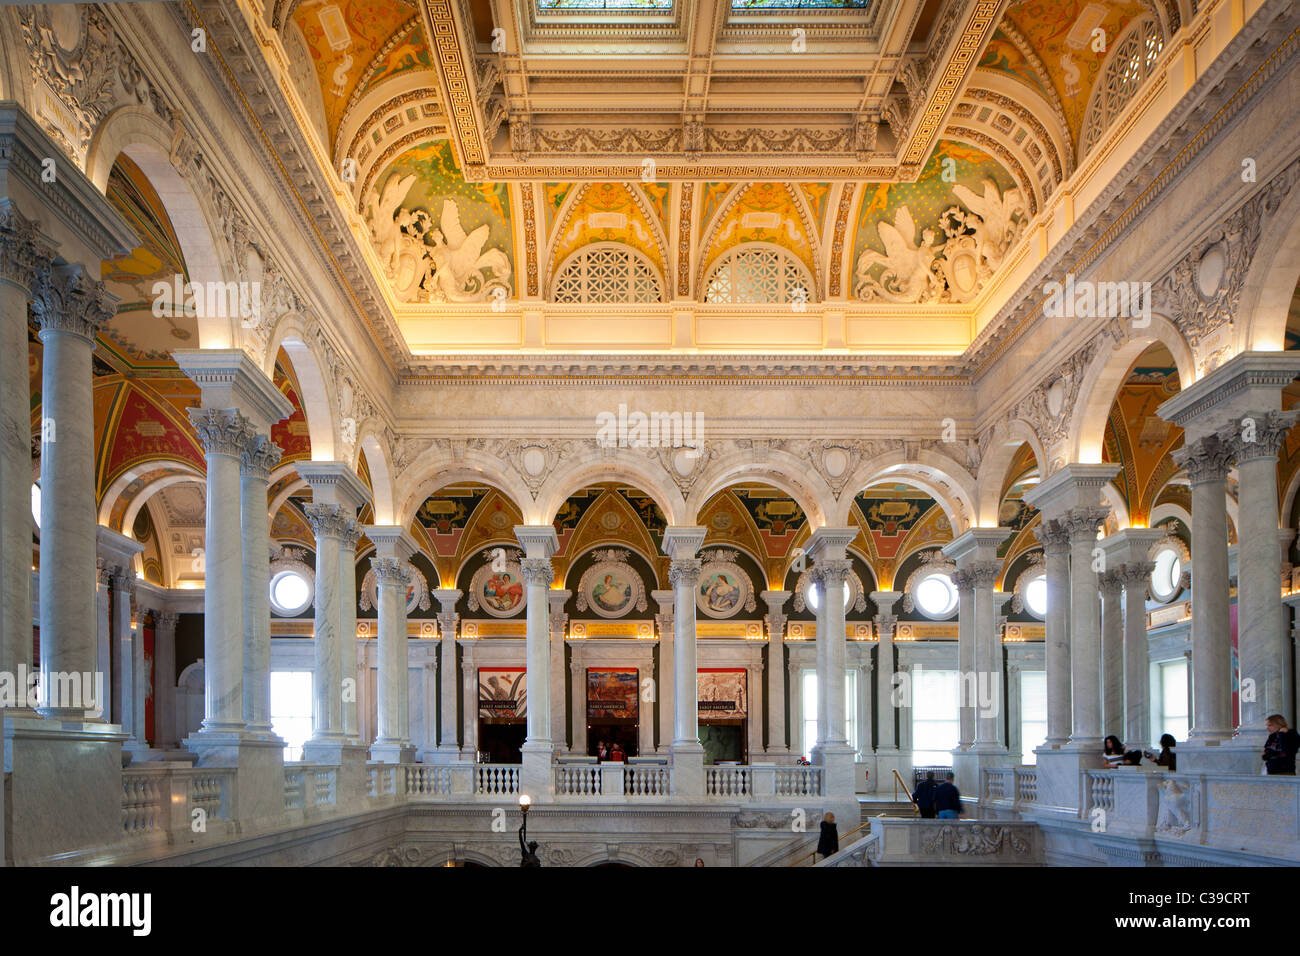 El Grand Hall del edificio de la Biblioteca del Congreso en Washington, D.C. Imagen De Stock